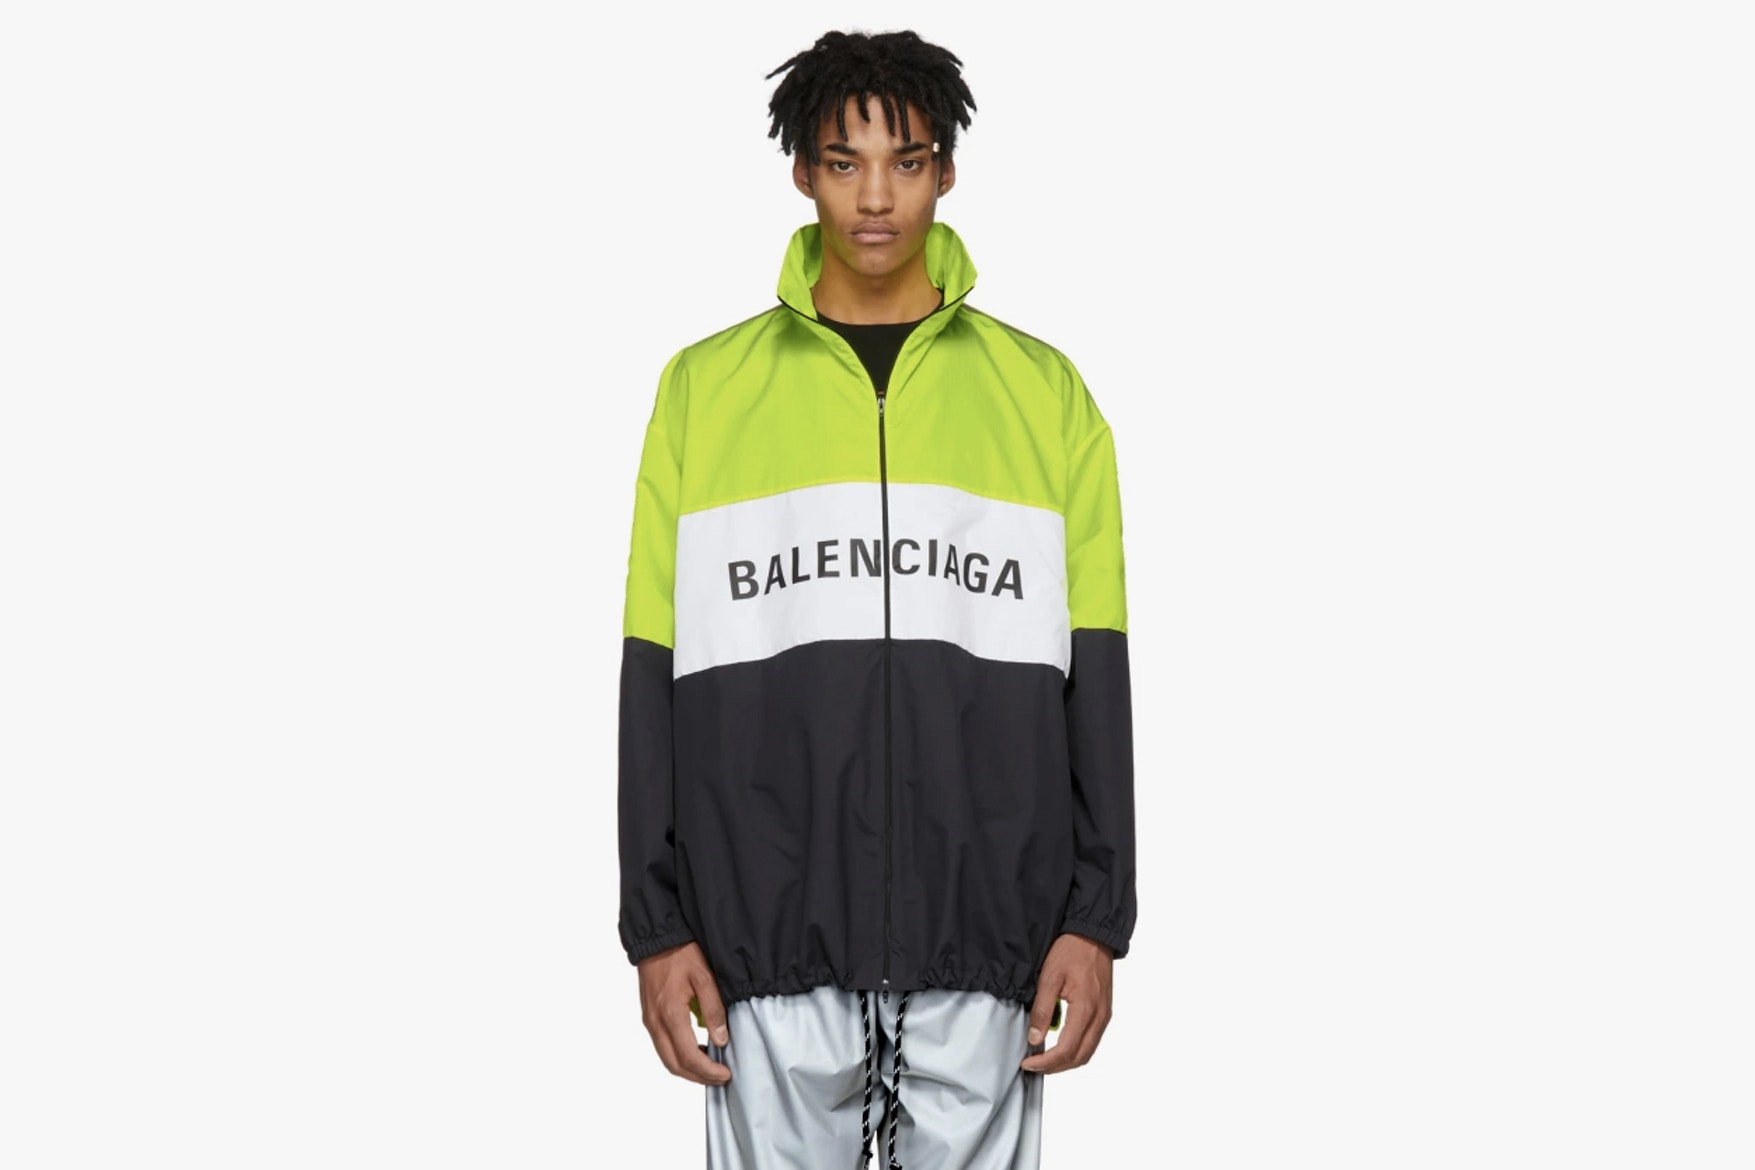 balenciaga-spring-summer-2018-menswear-collection-2